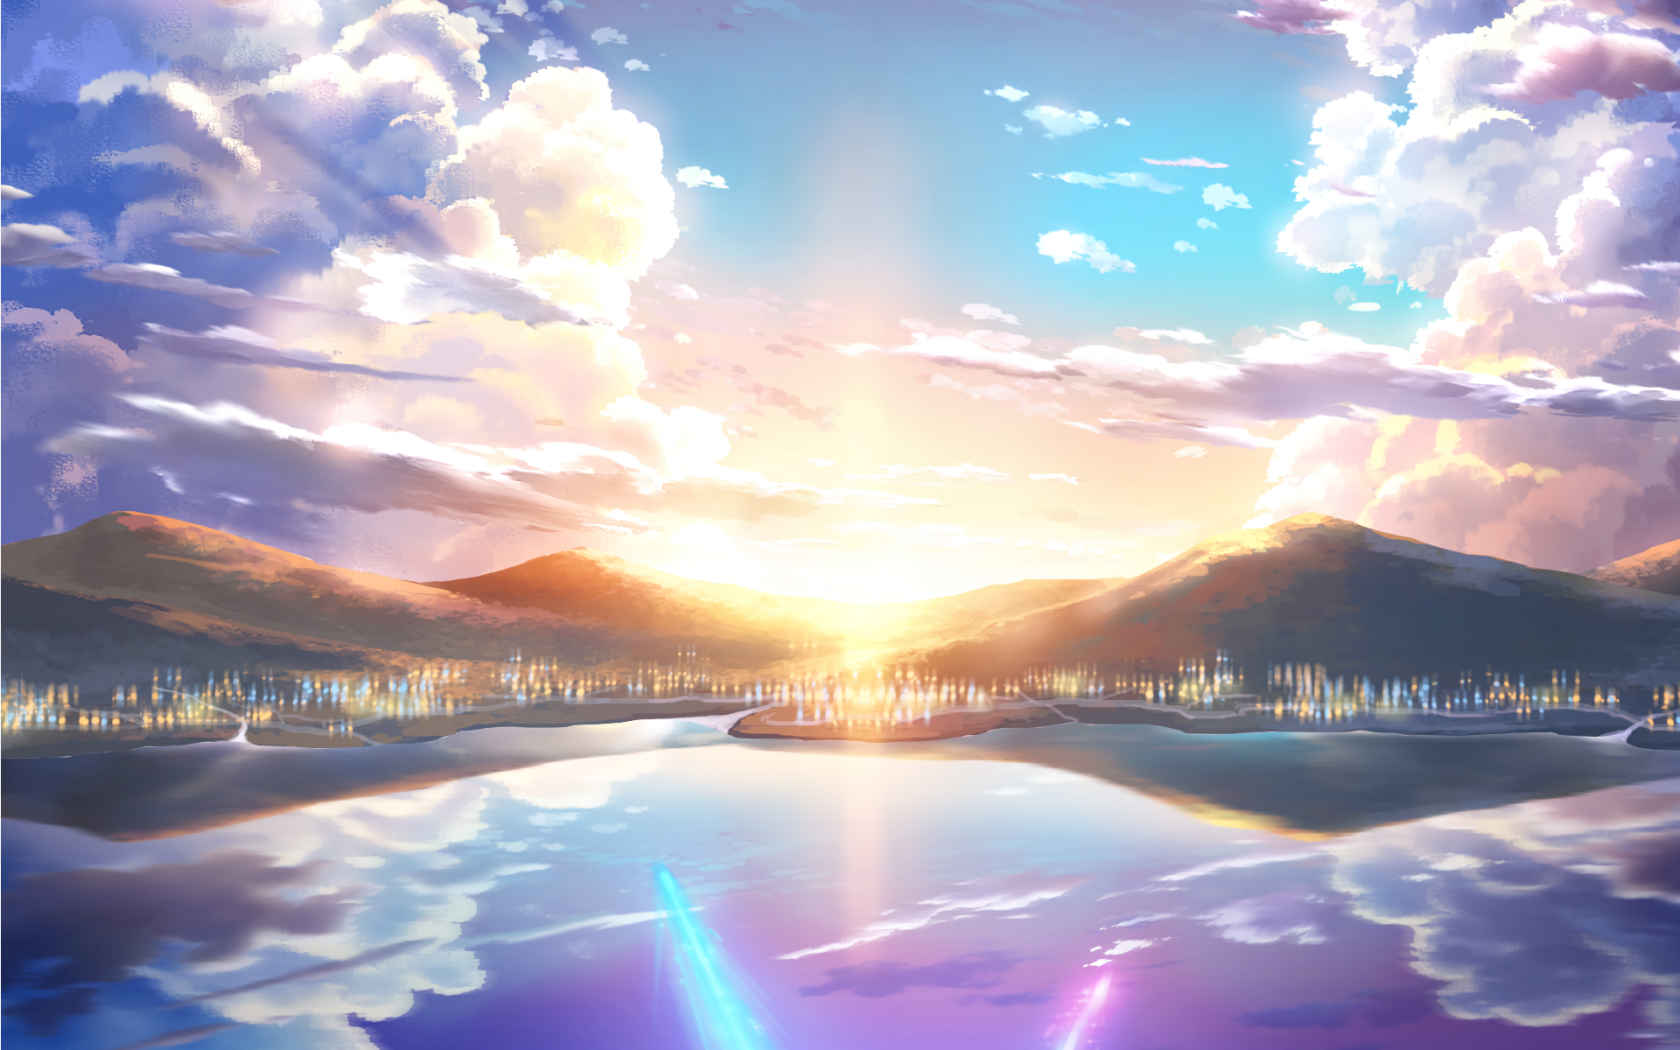 Free Download Kimi No Na Wa Your Name Wallpaper Hd Download 1920x1200 For Your Desktop Mobile Tablet Explore 94 Wallpapers Hd Names That Start With E Wallpapers Hd Names